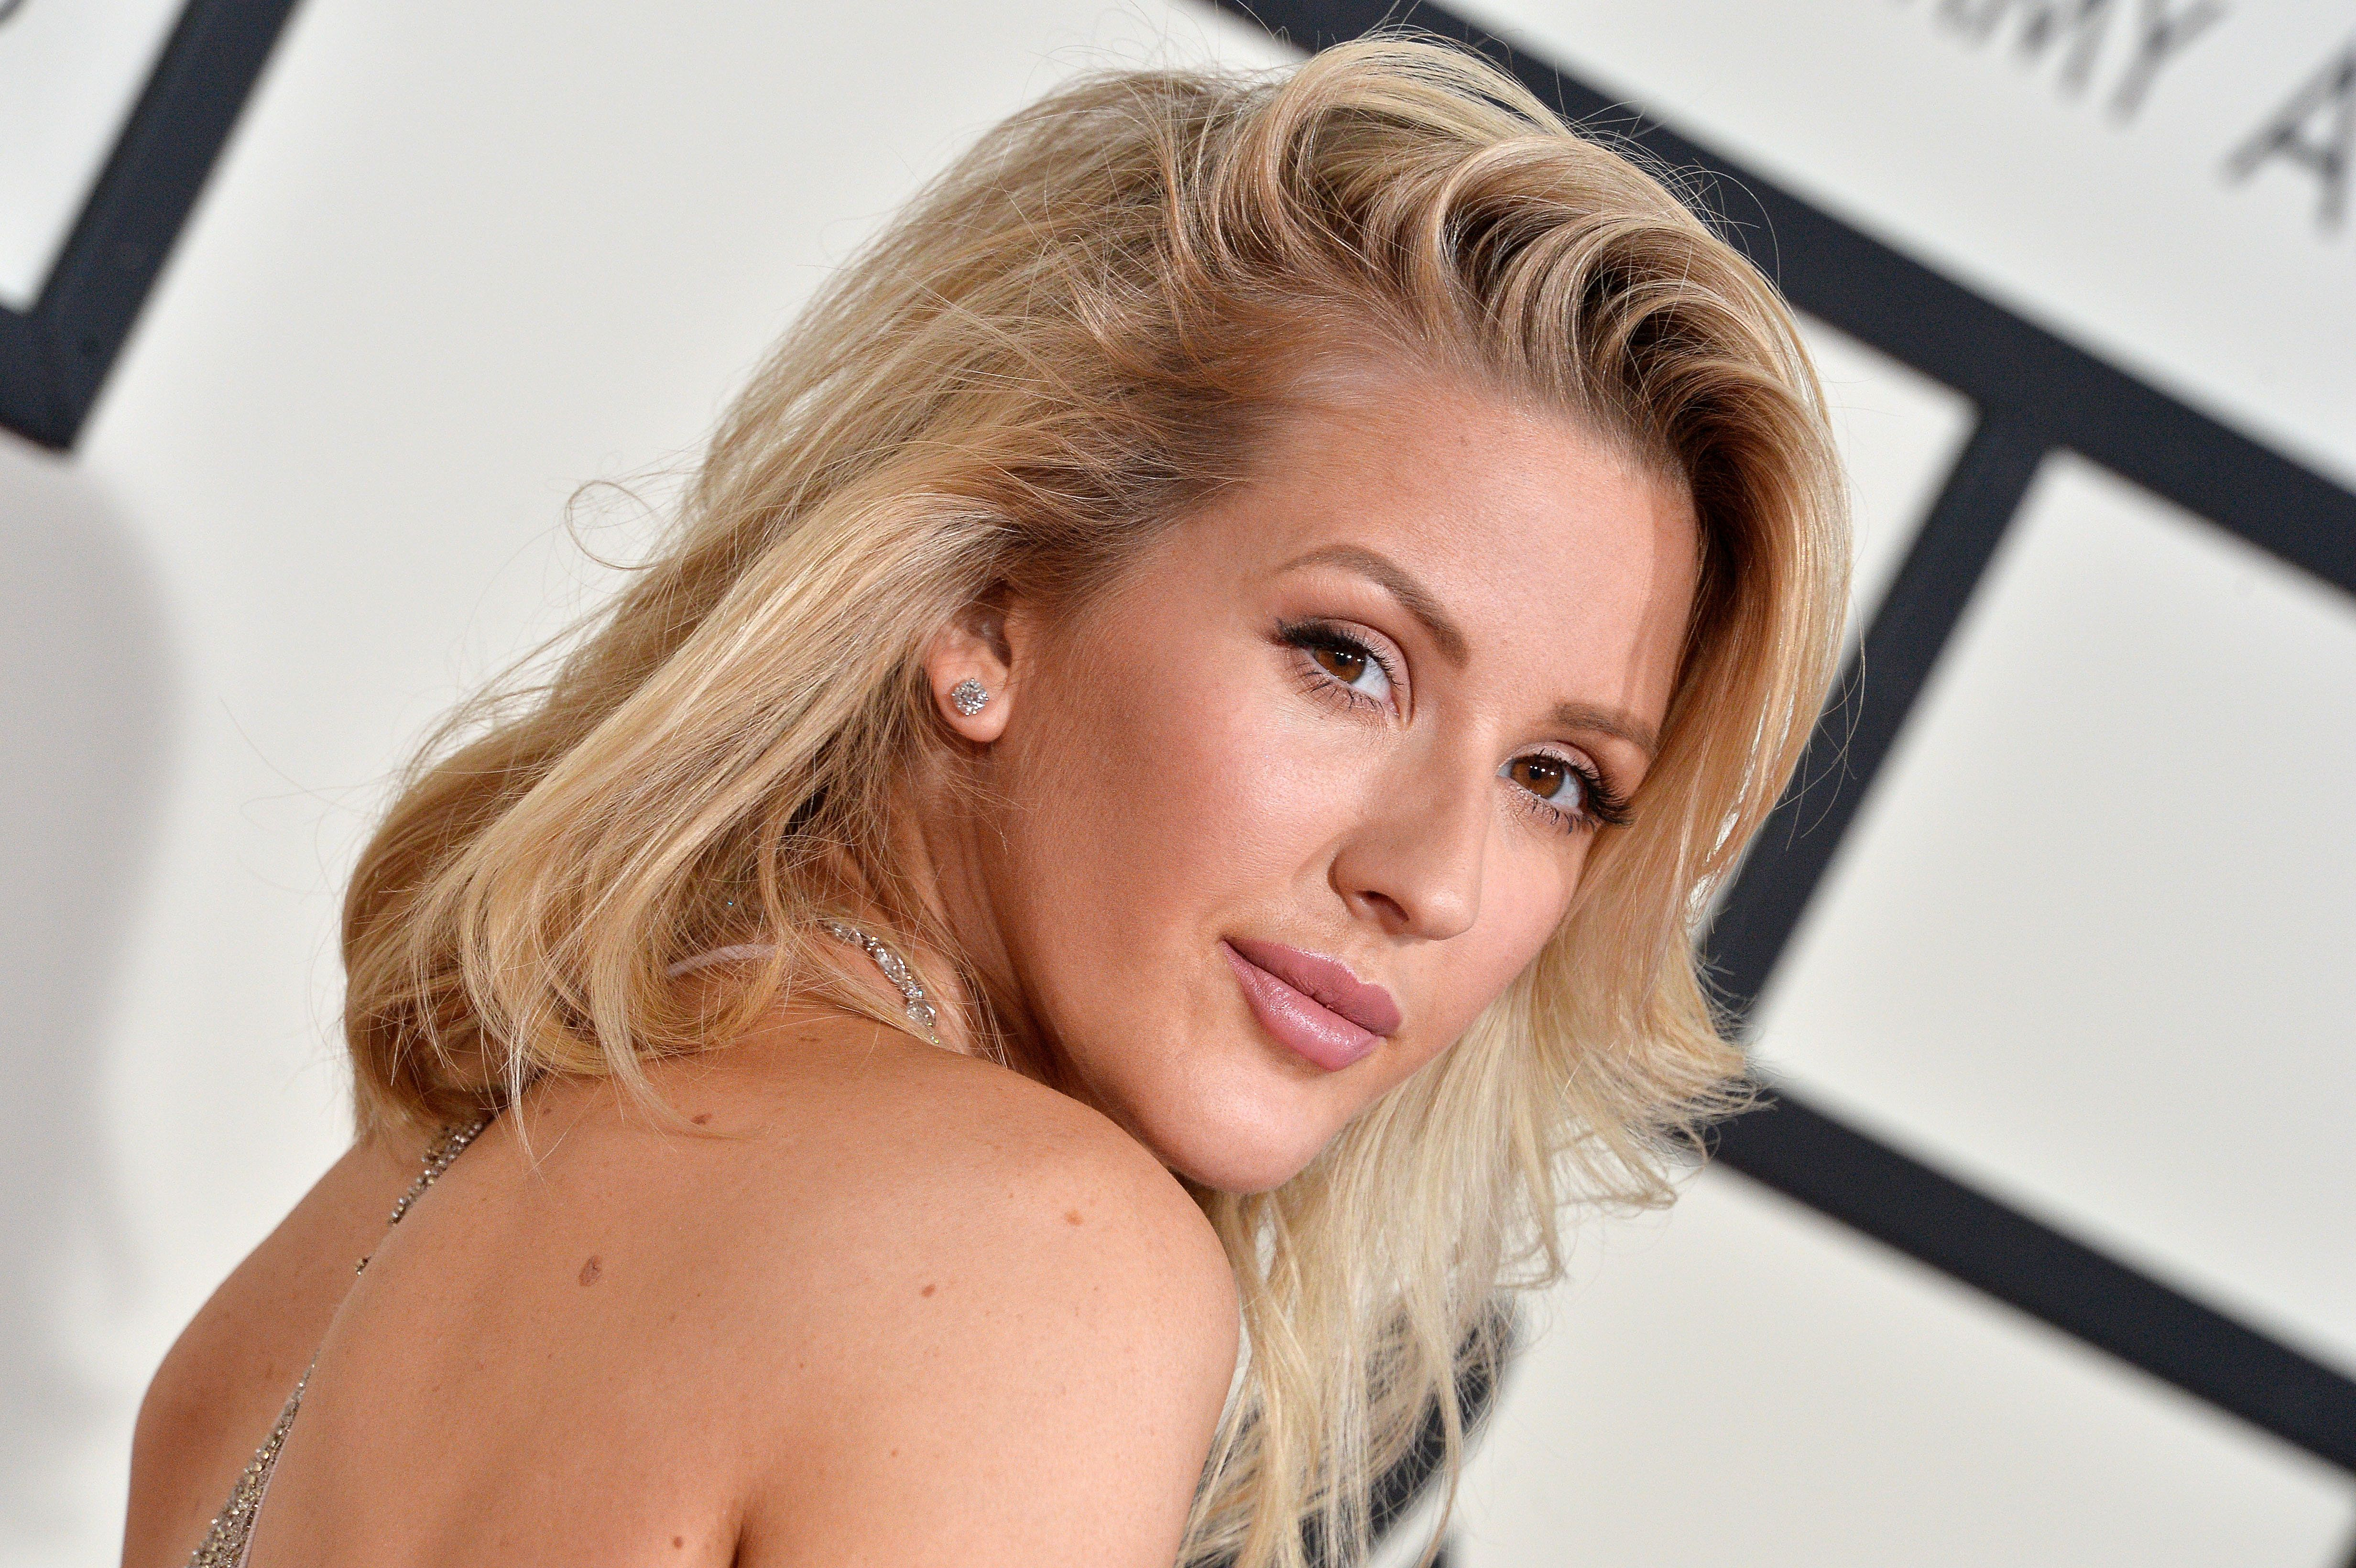 Ellie Goulding Opens Up About Anxiety And Panic Attack